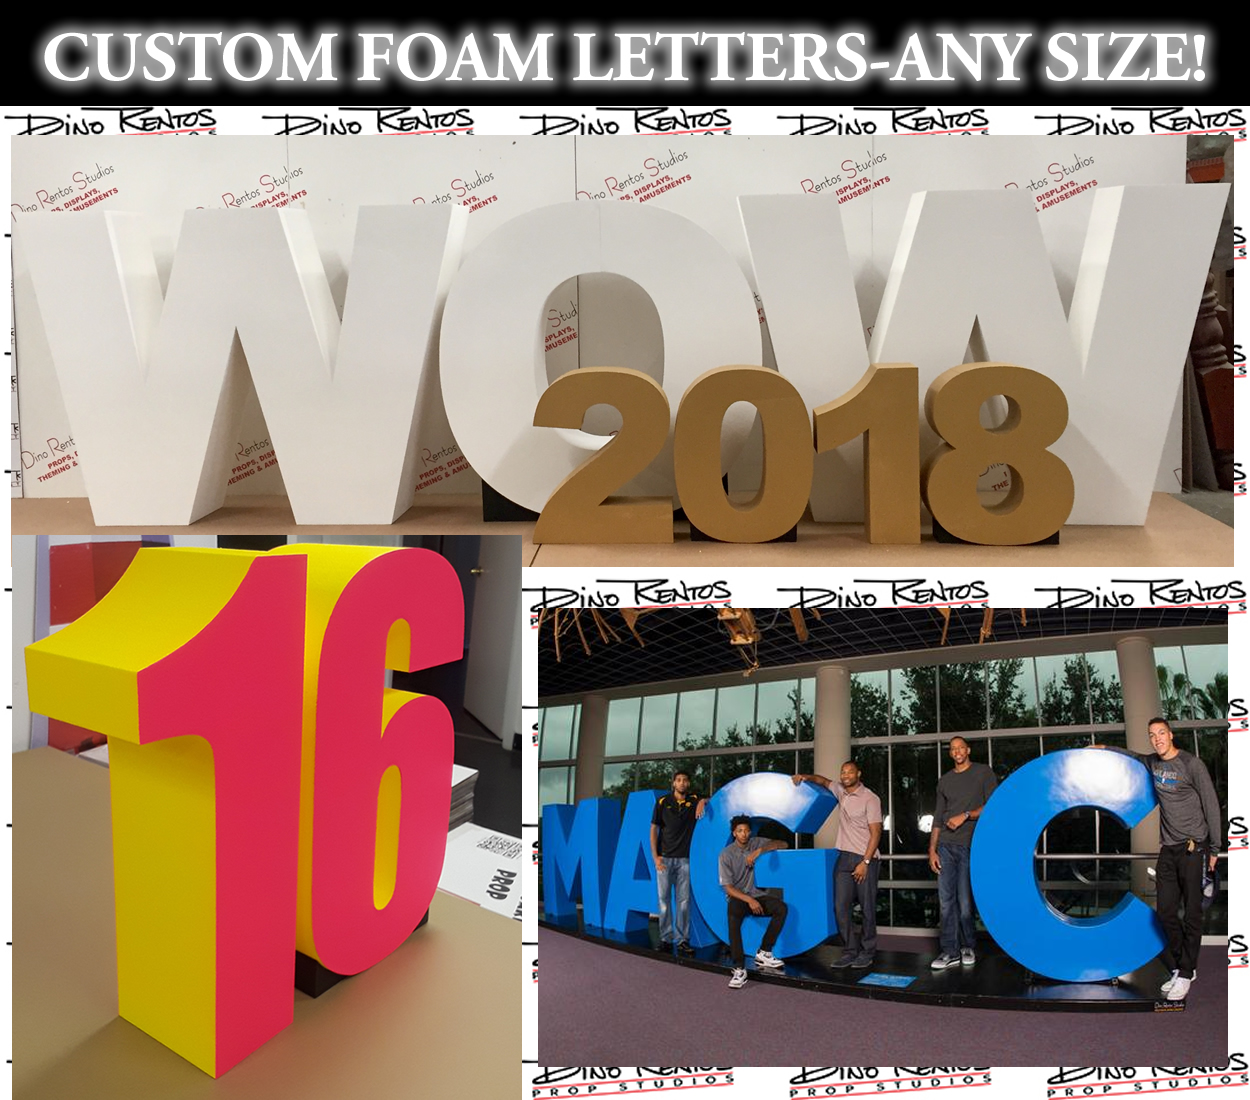 Foam Letters - Giant, Big, Oversized Letters and Numbers - Dino